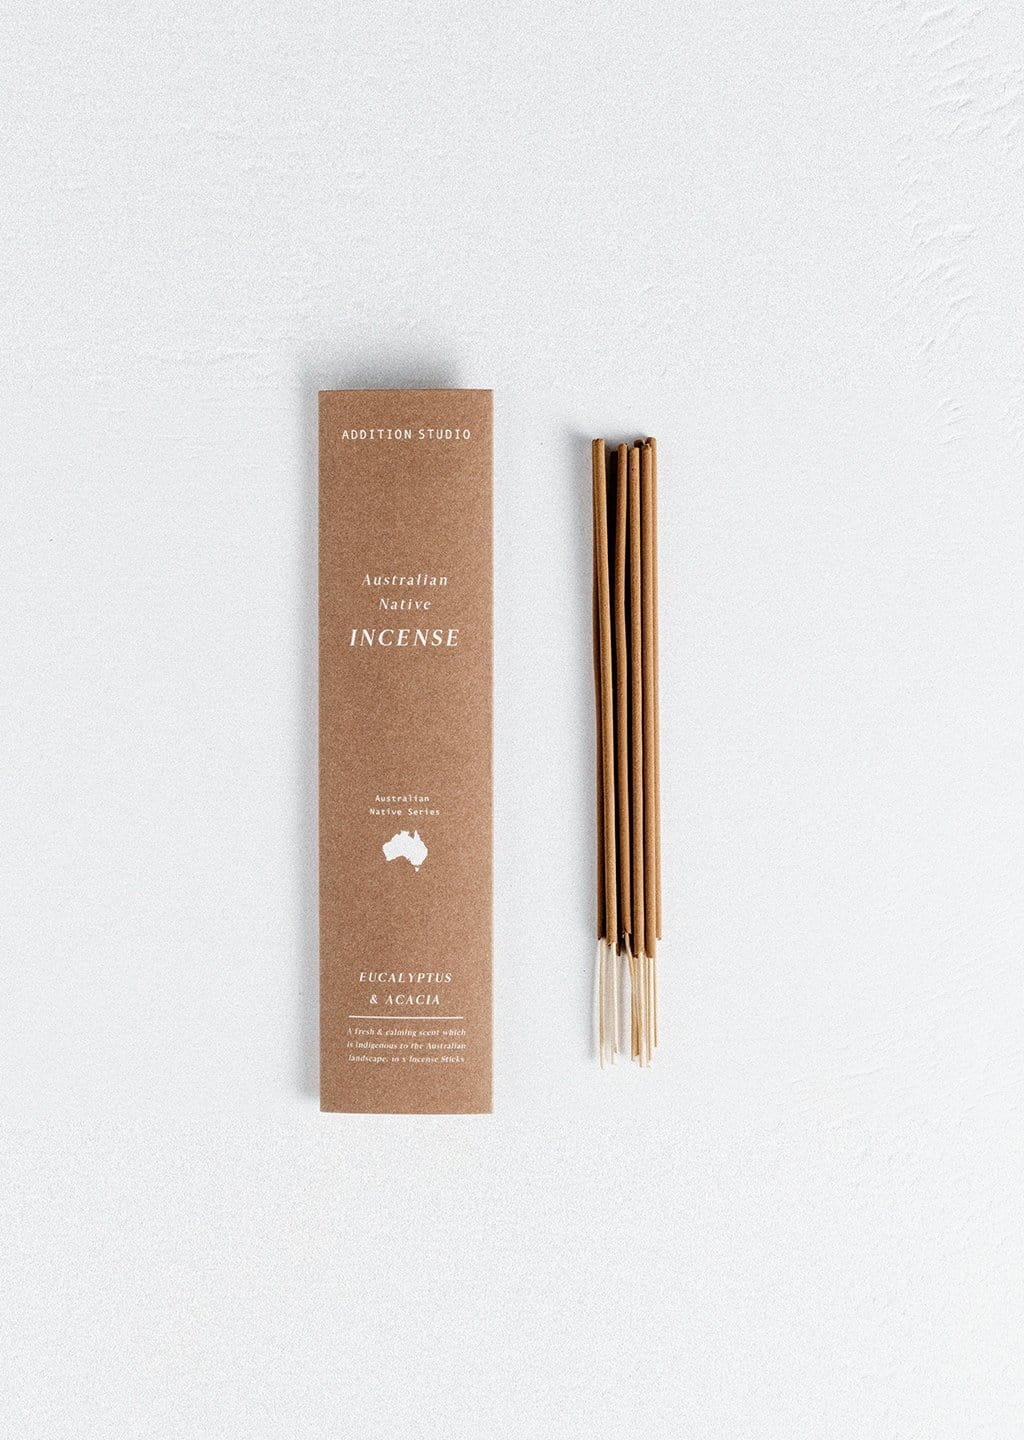 Australian Native Incense - Small - Eucalyptus & Acacia